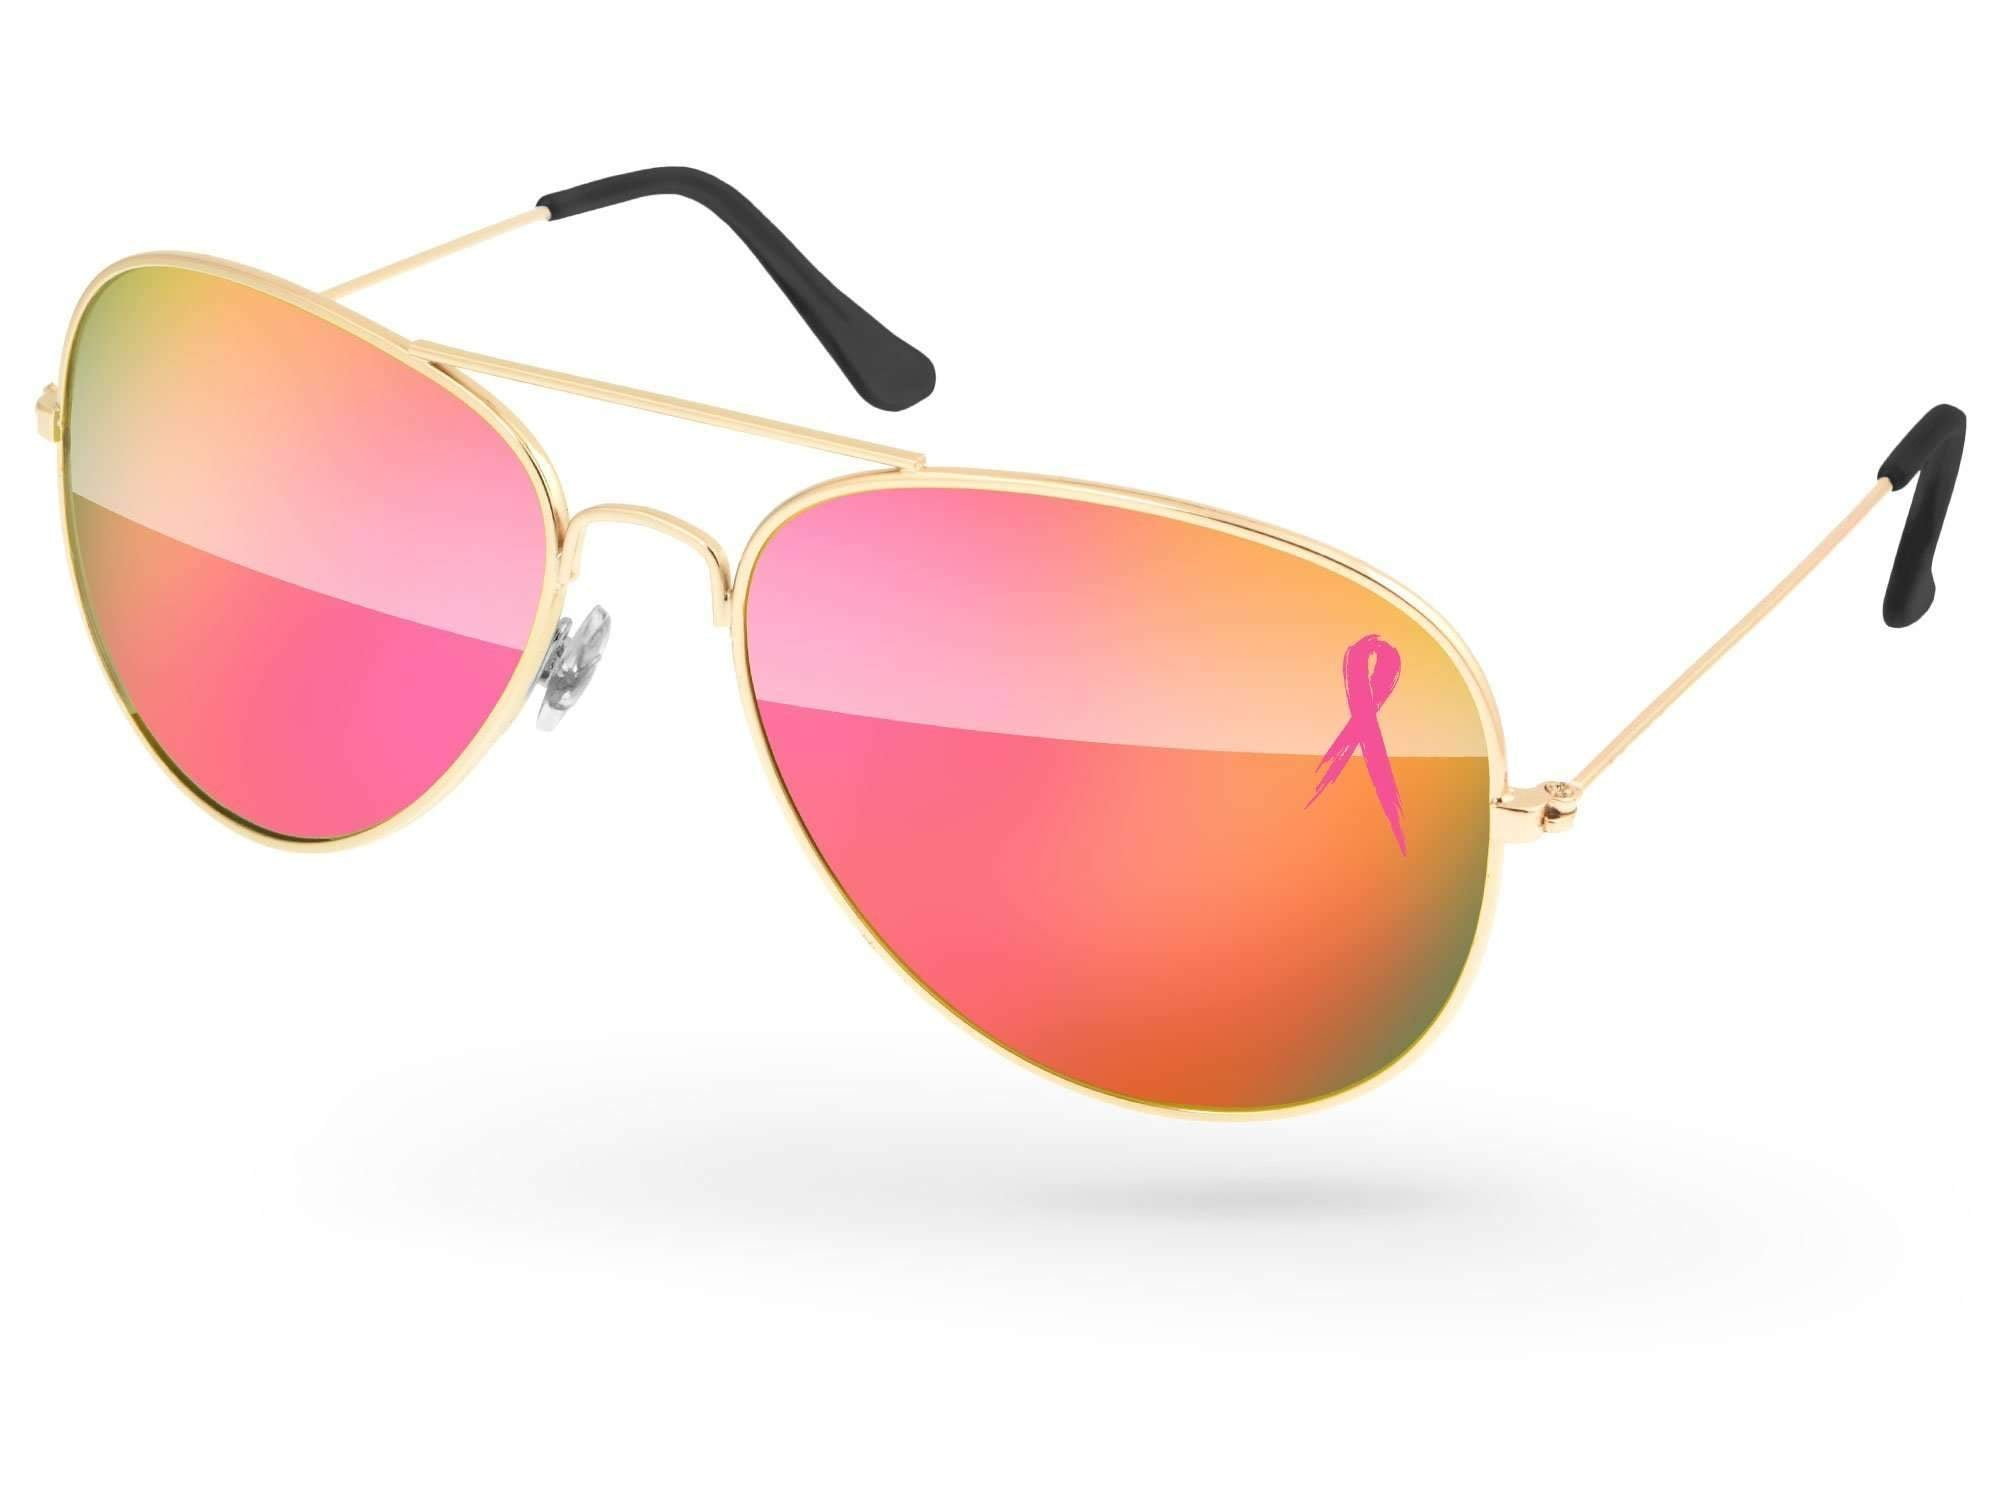 MM500 - Breast Cancer Awareness Metal Aviator Mirror Promotional Sunglasses w/ 1-color lens imprint